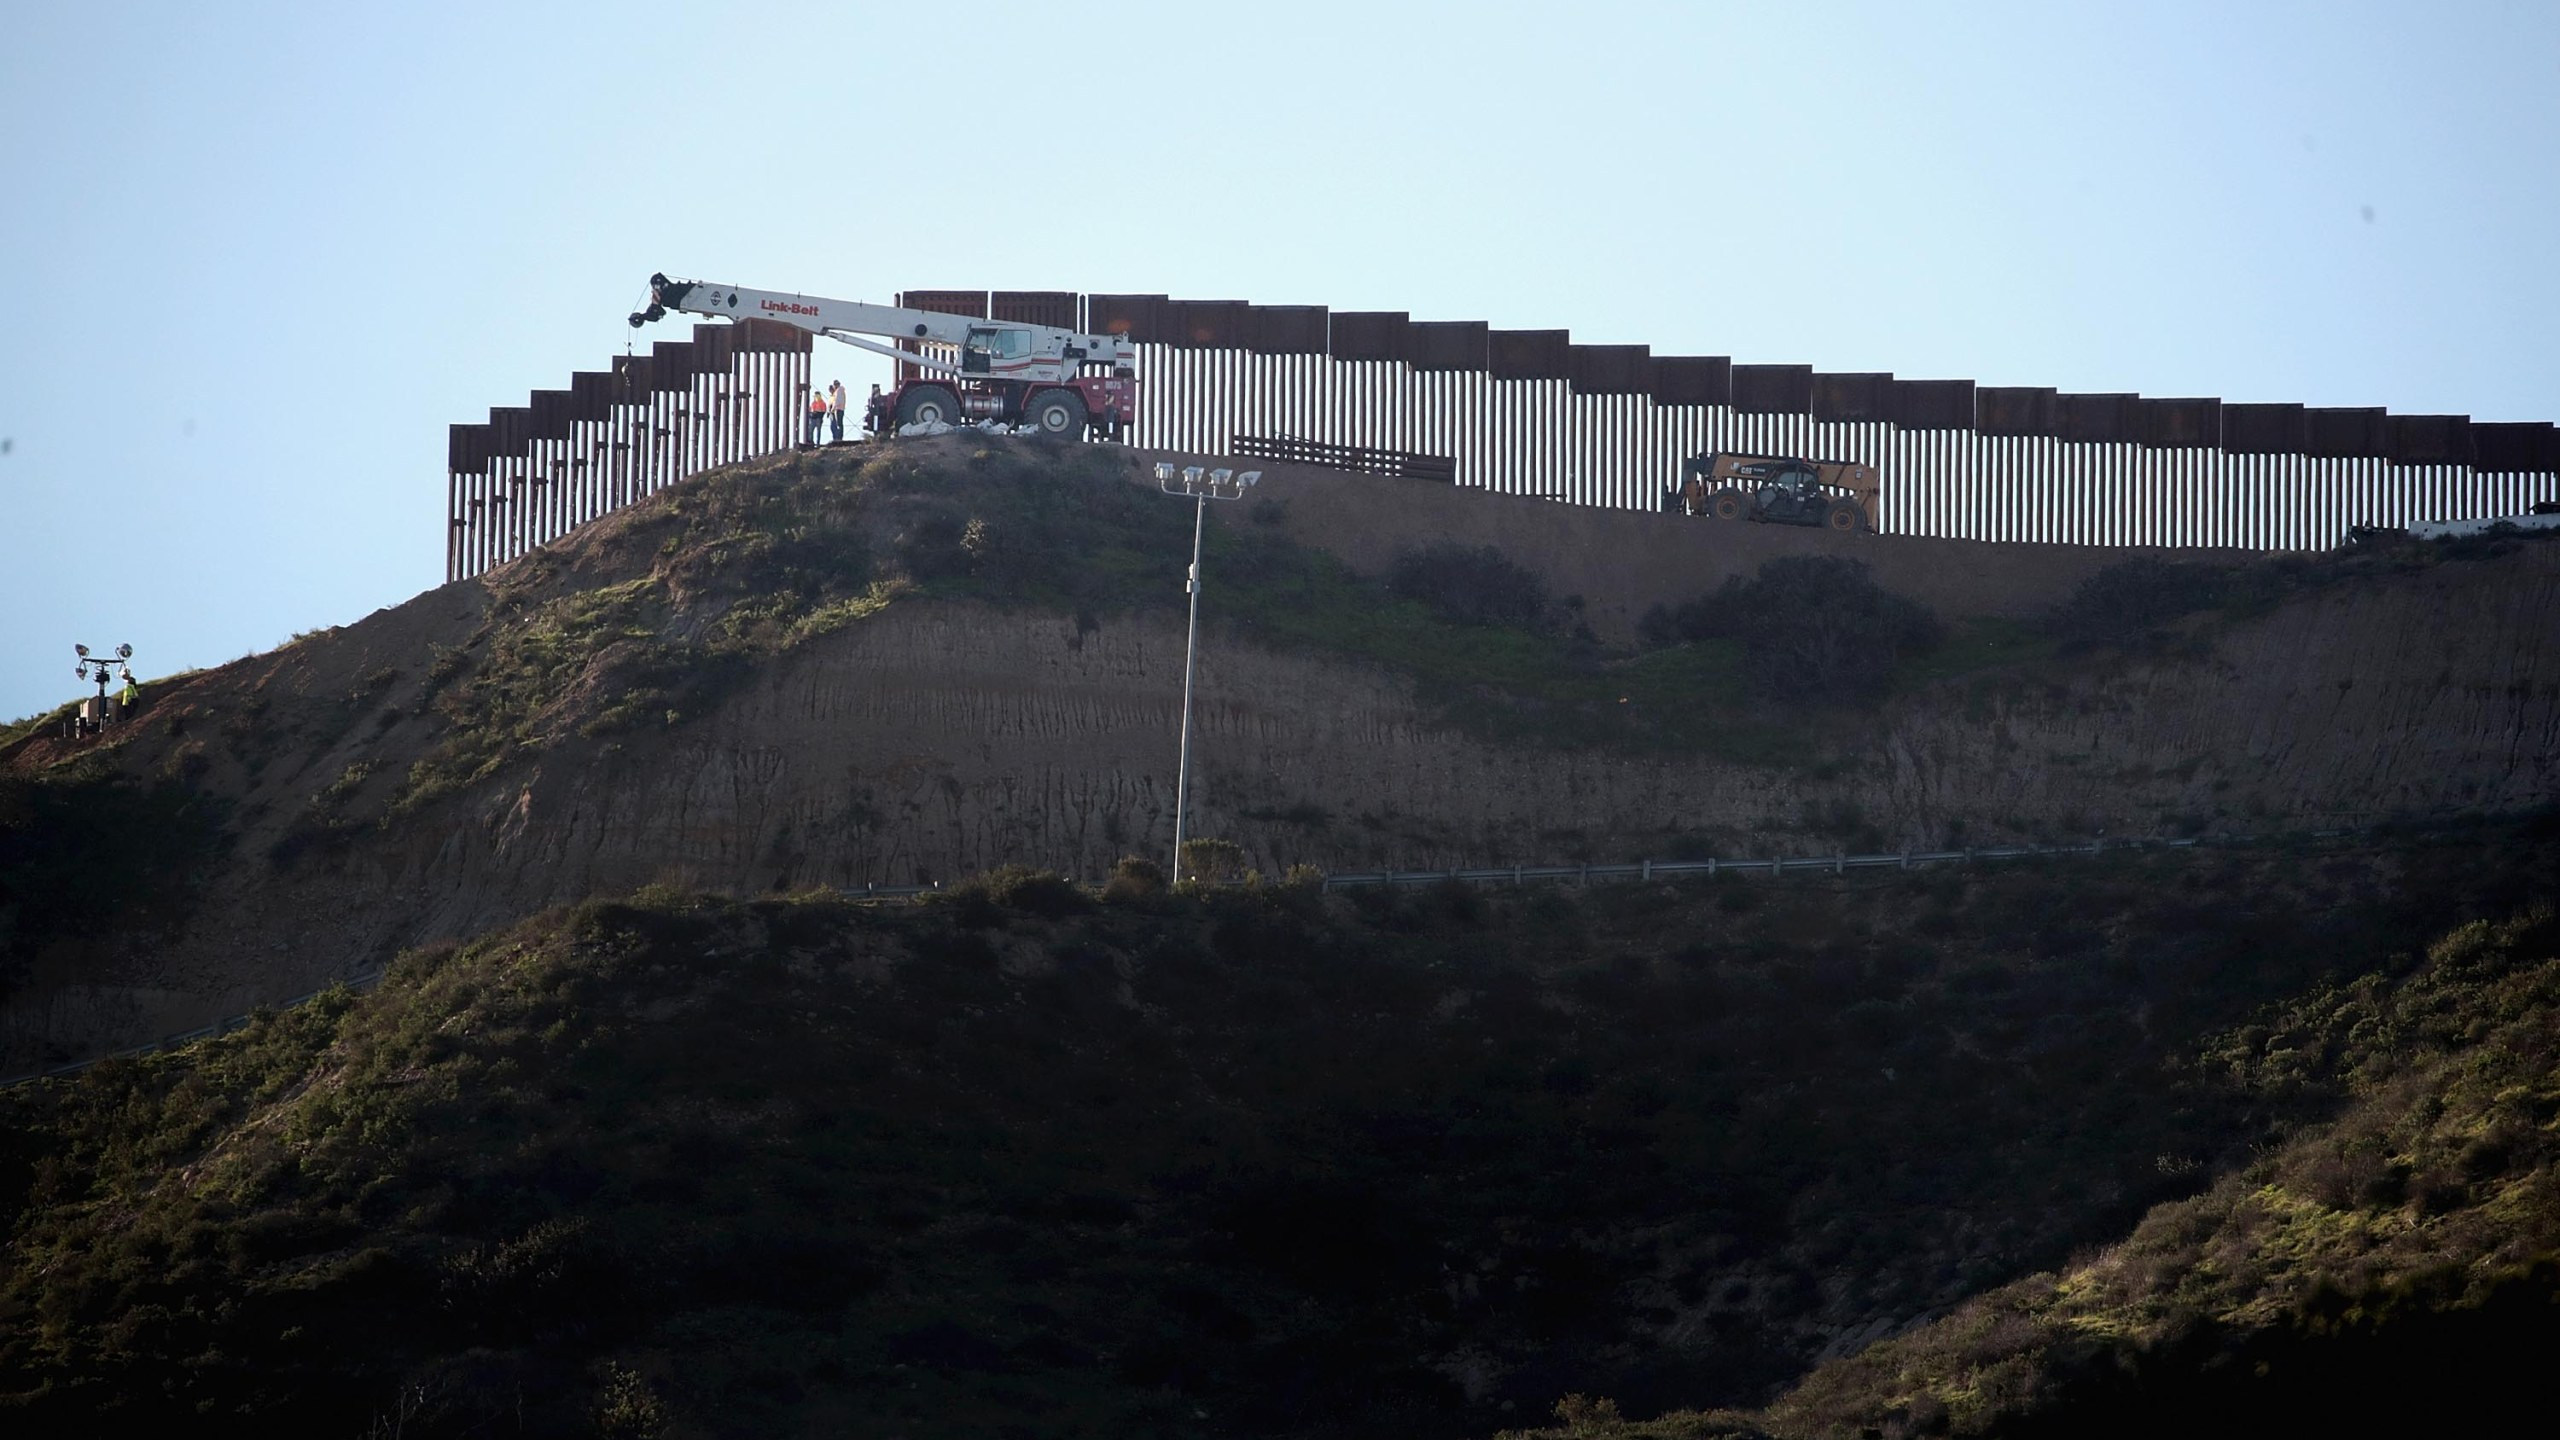 Workers construct a barrier between the United States and Mexico in San Diego County on Jan. 23, 2019. (Credit: Scott Olson / Getty Images)